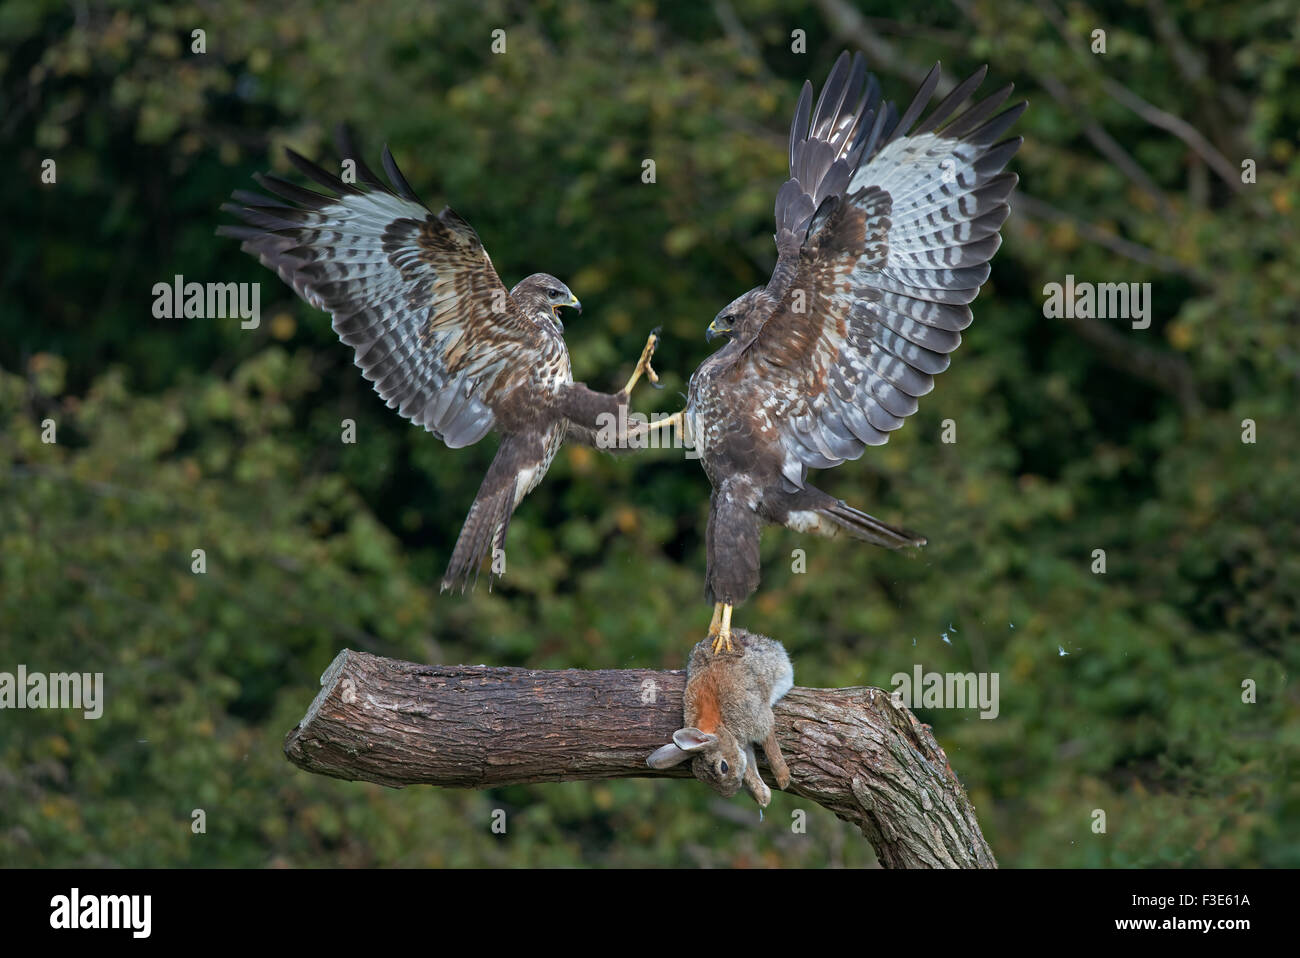 Pair of Buzzards- Buteo buteo display aggression over  prey. Autumn. Uk - Stock Image